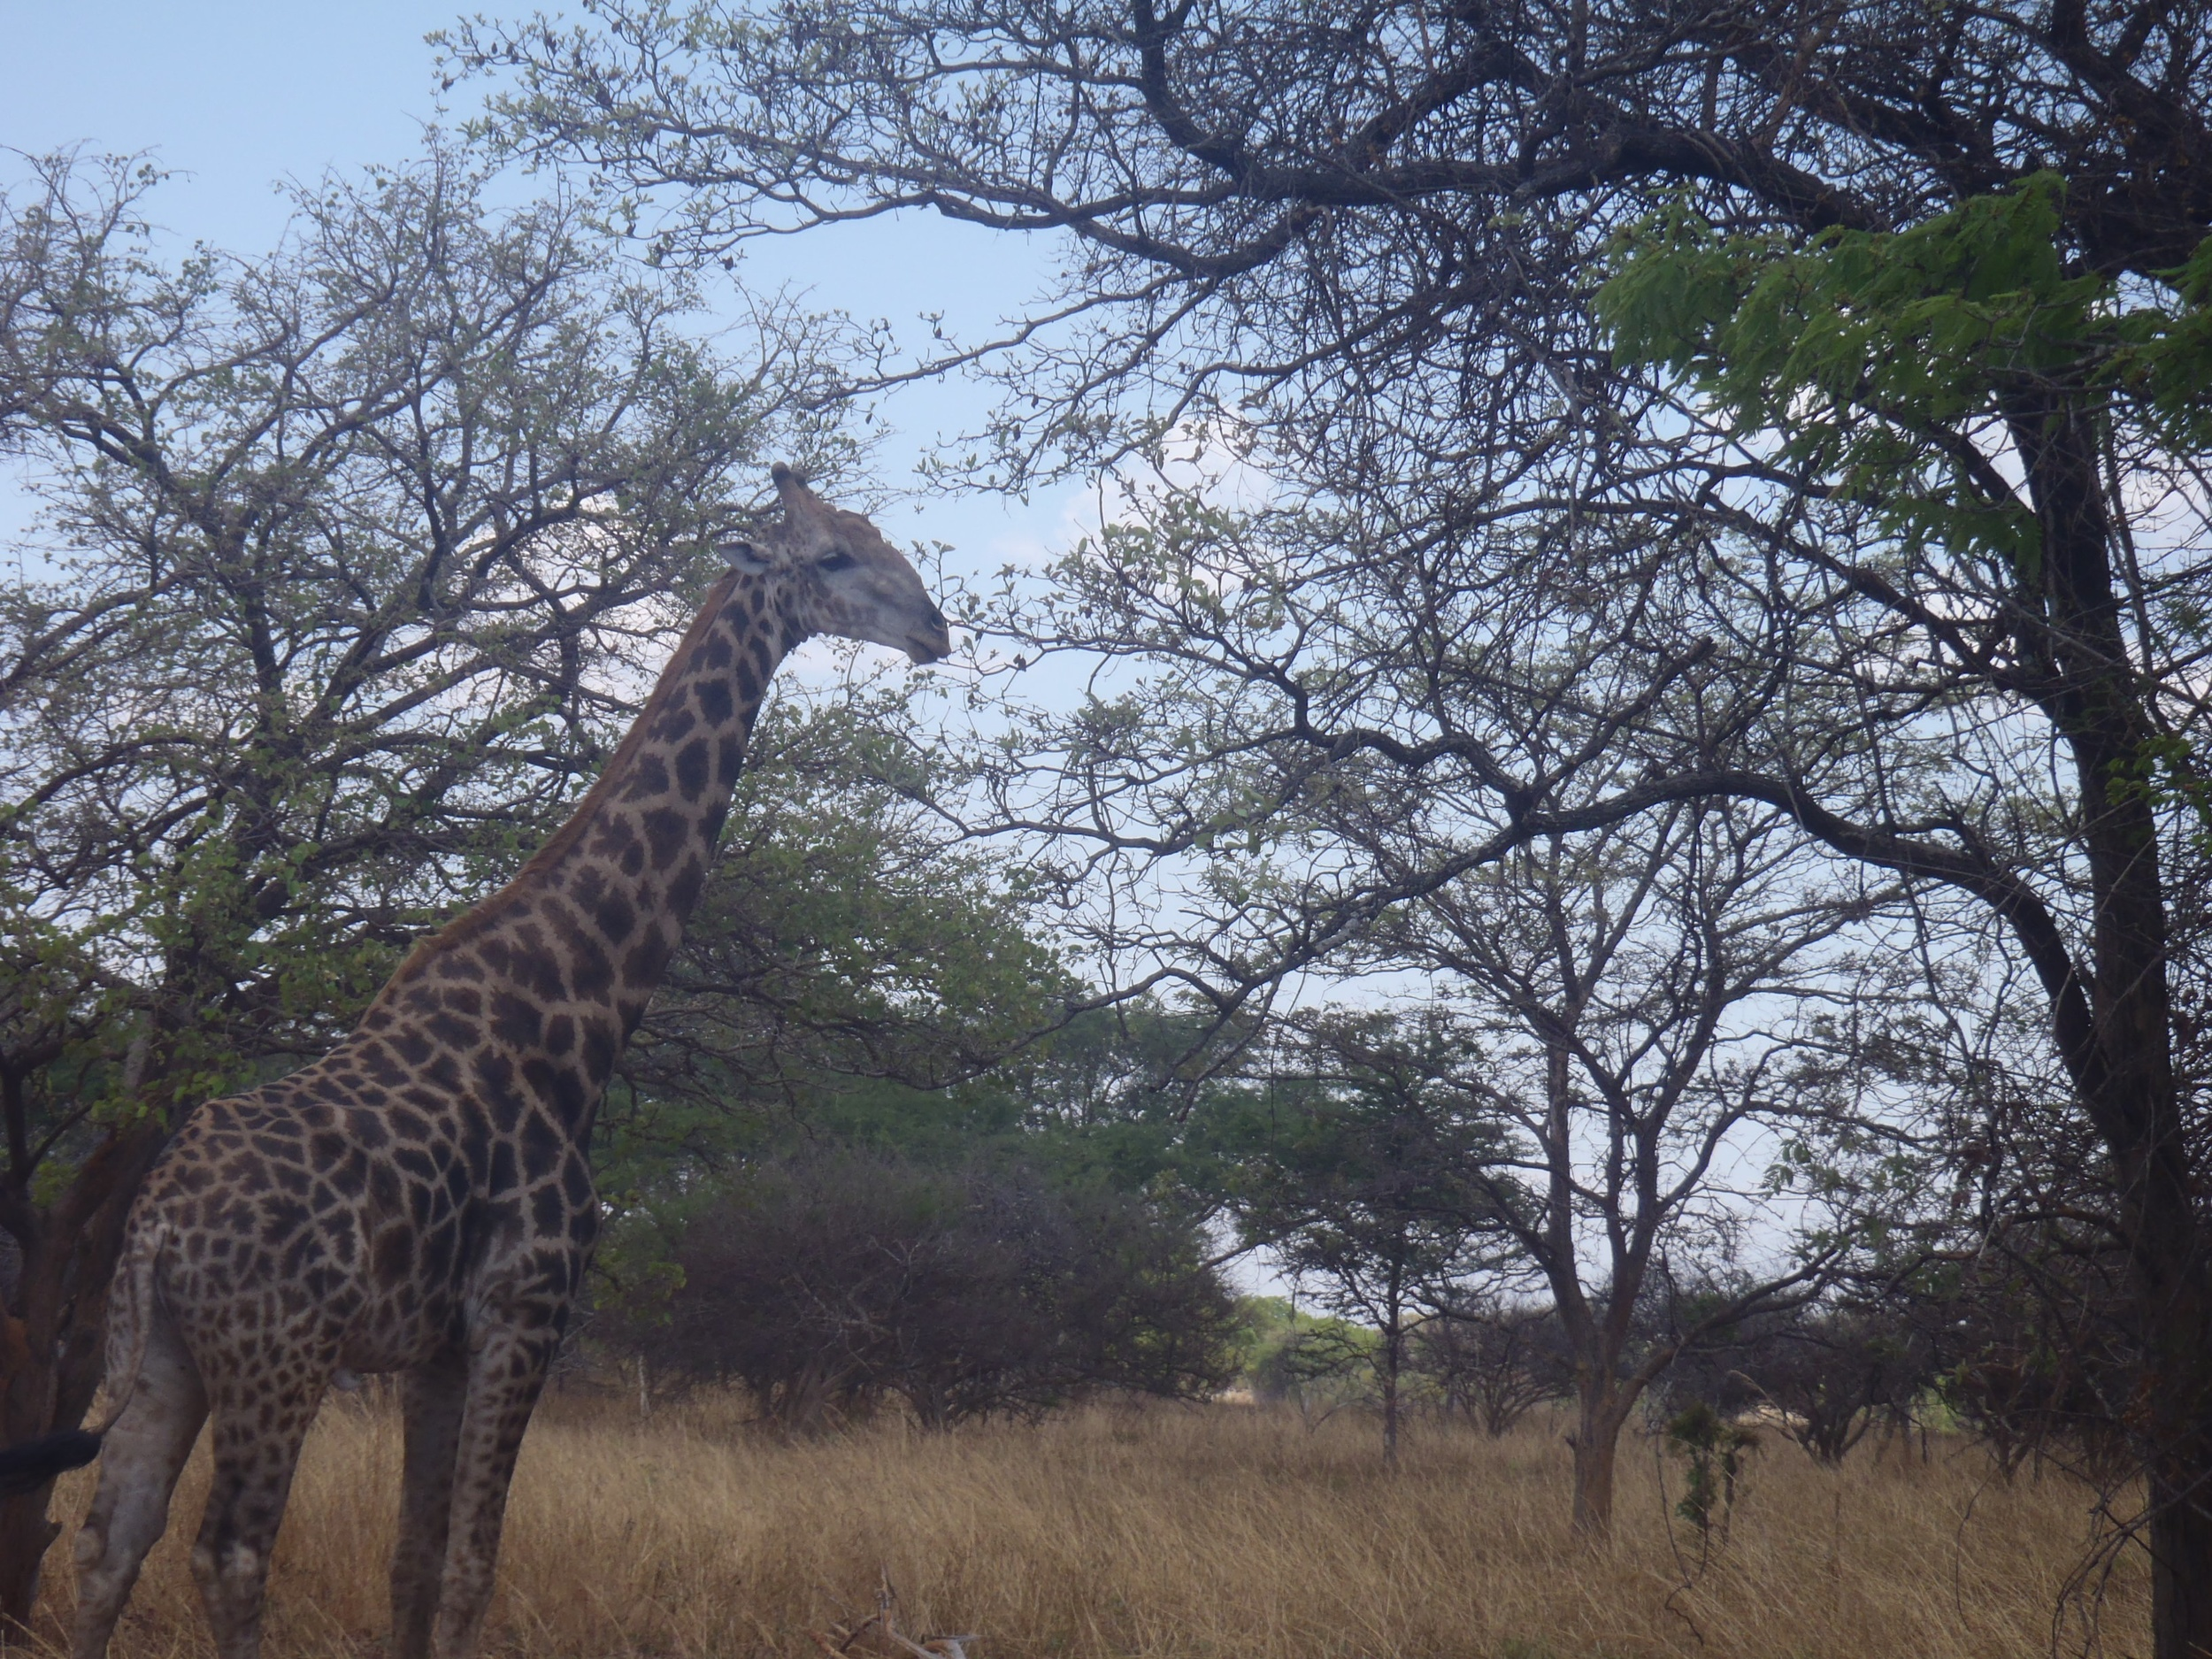 Giraffe sitings on safari in Zambia, one of the many different 'realities' present. Photo by Erin Schneider